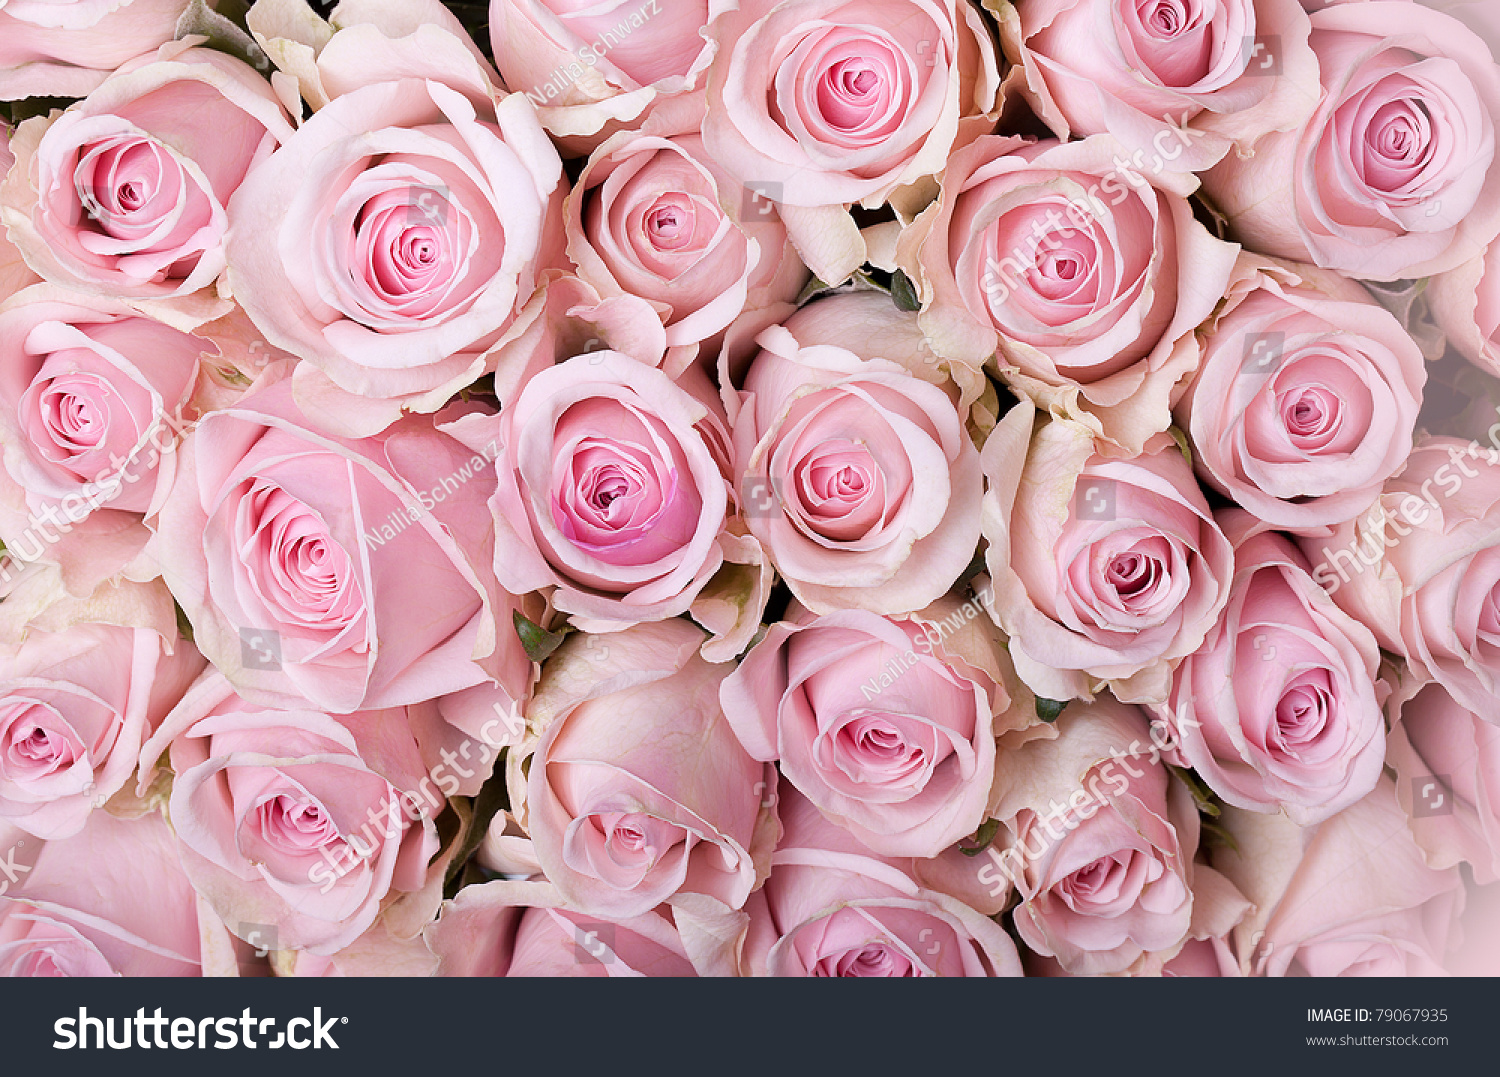 closeup many pastel colored pink roses stock photo 79067935 shutterstock. Black Bedroom Furniture Sets. Home Design Ideas